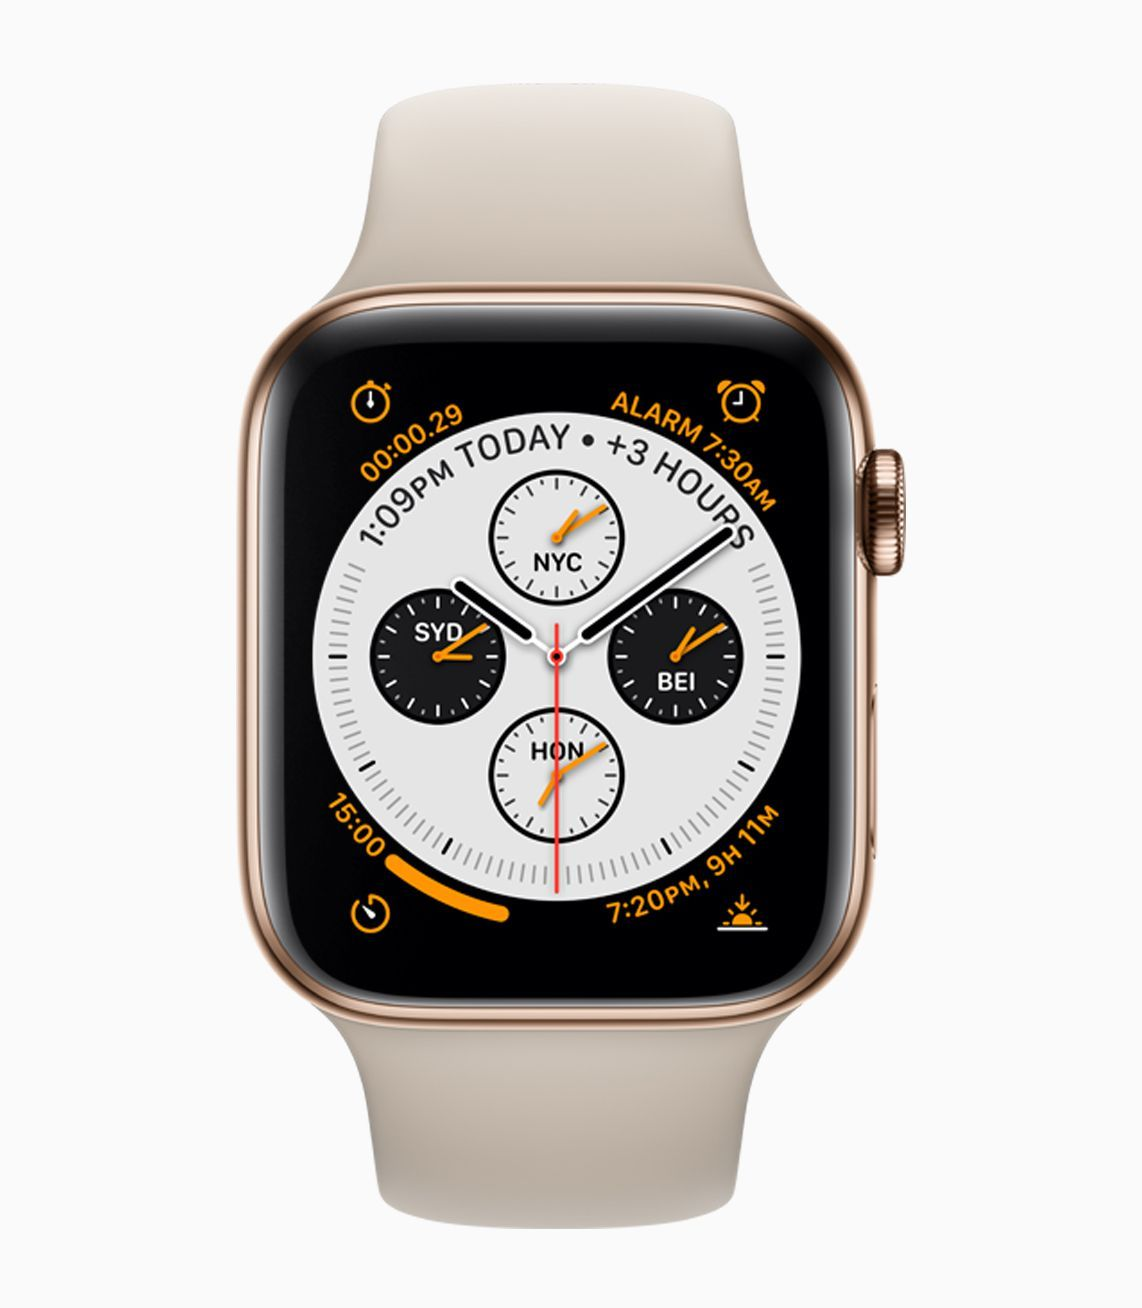 Apple Unveils Its Most FitnessFocused Watch Yet Apple